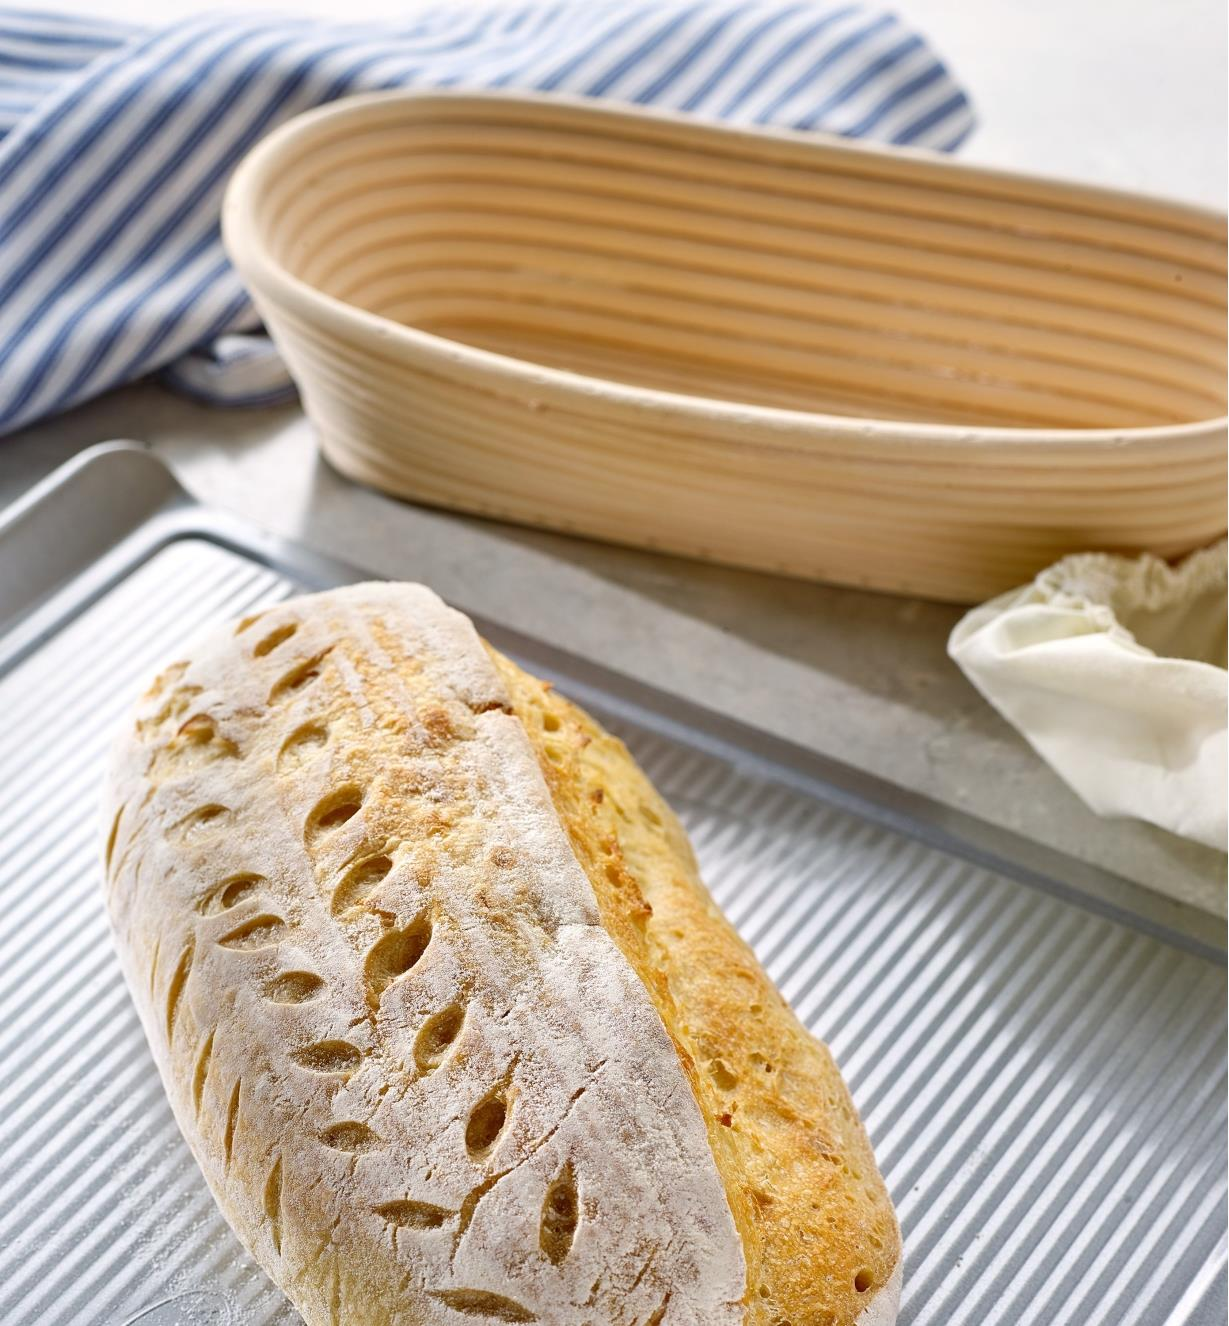 An oval bread is shown on a baking sheet next to an empty oval banneton